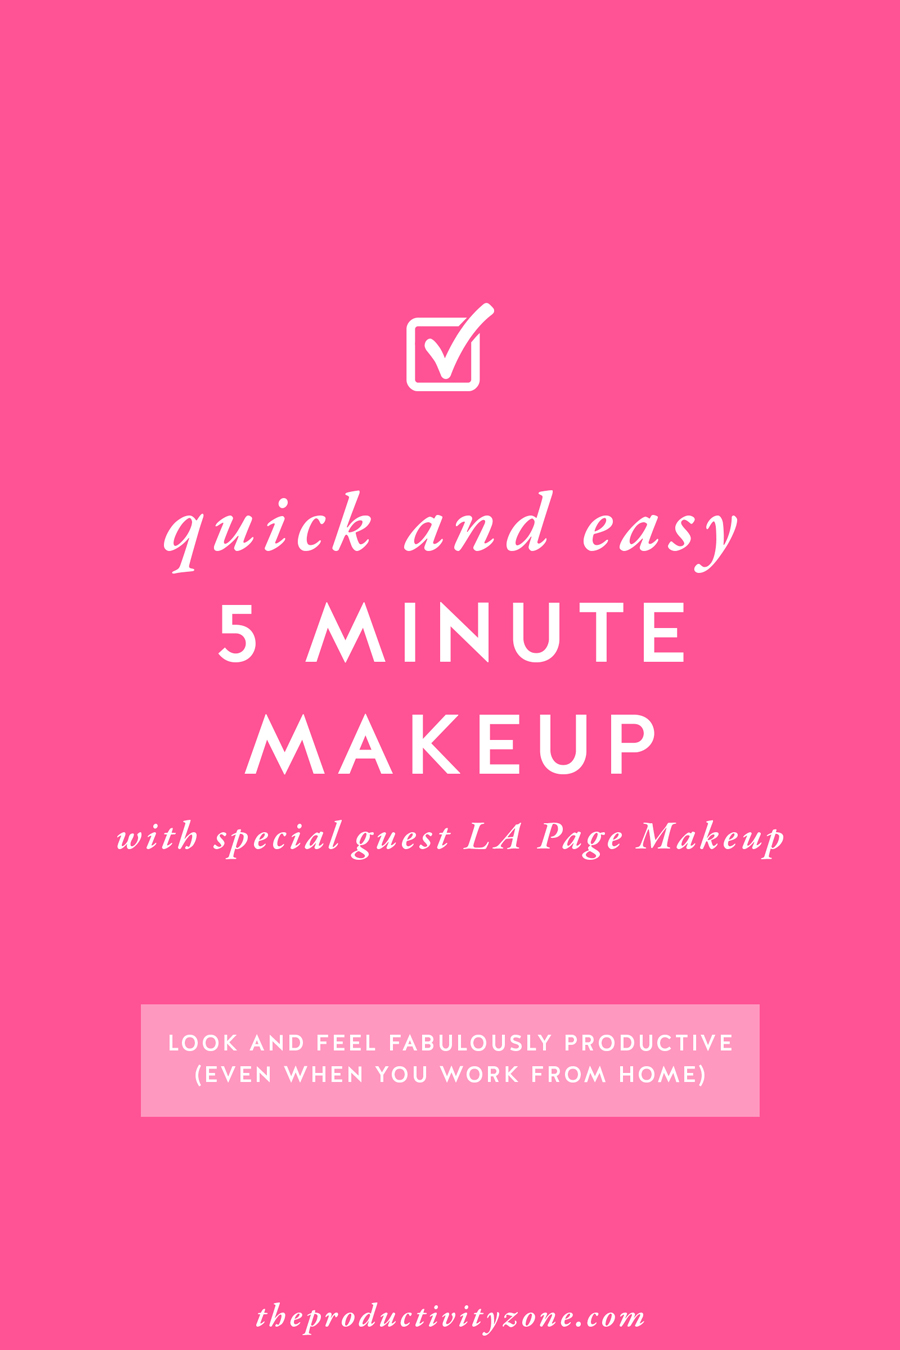 Let's make lipstick makes me productive a thing!! Female entrepreneurs and work from home moms, you can feel pretty AND productive (even when you work from home) with this quick and easy 5 minute makeup routine from LA Page Makeup on The Productivity Zone!!